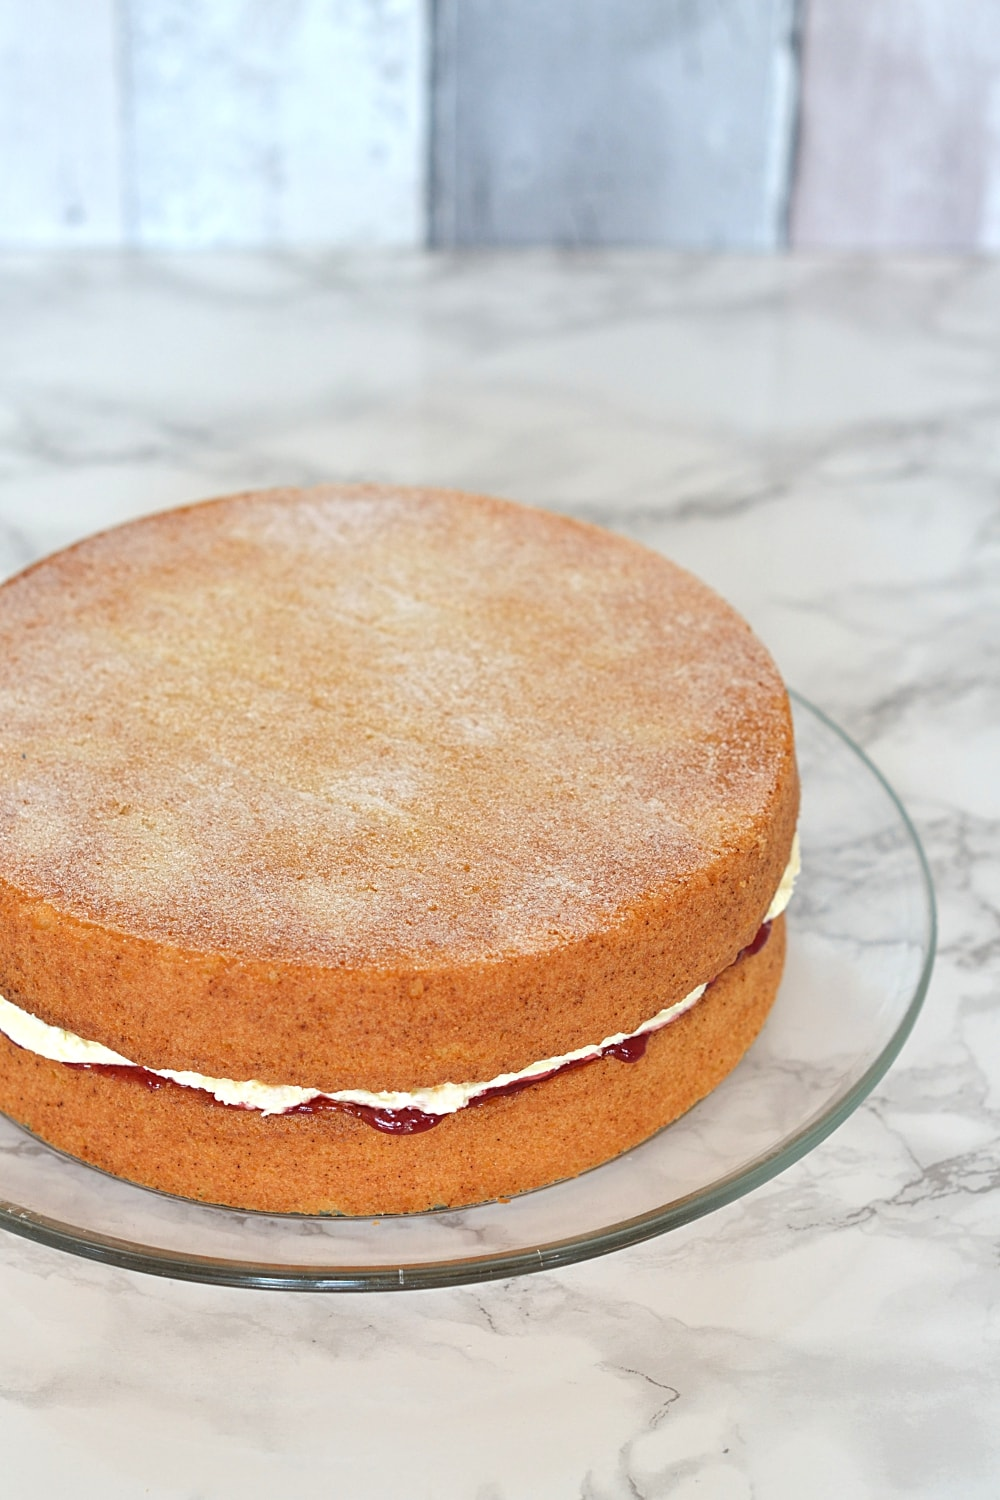 Classic Victoria Sponge recipe from Baking with Granny. Plain sponge with raspberry jam; cream optional.